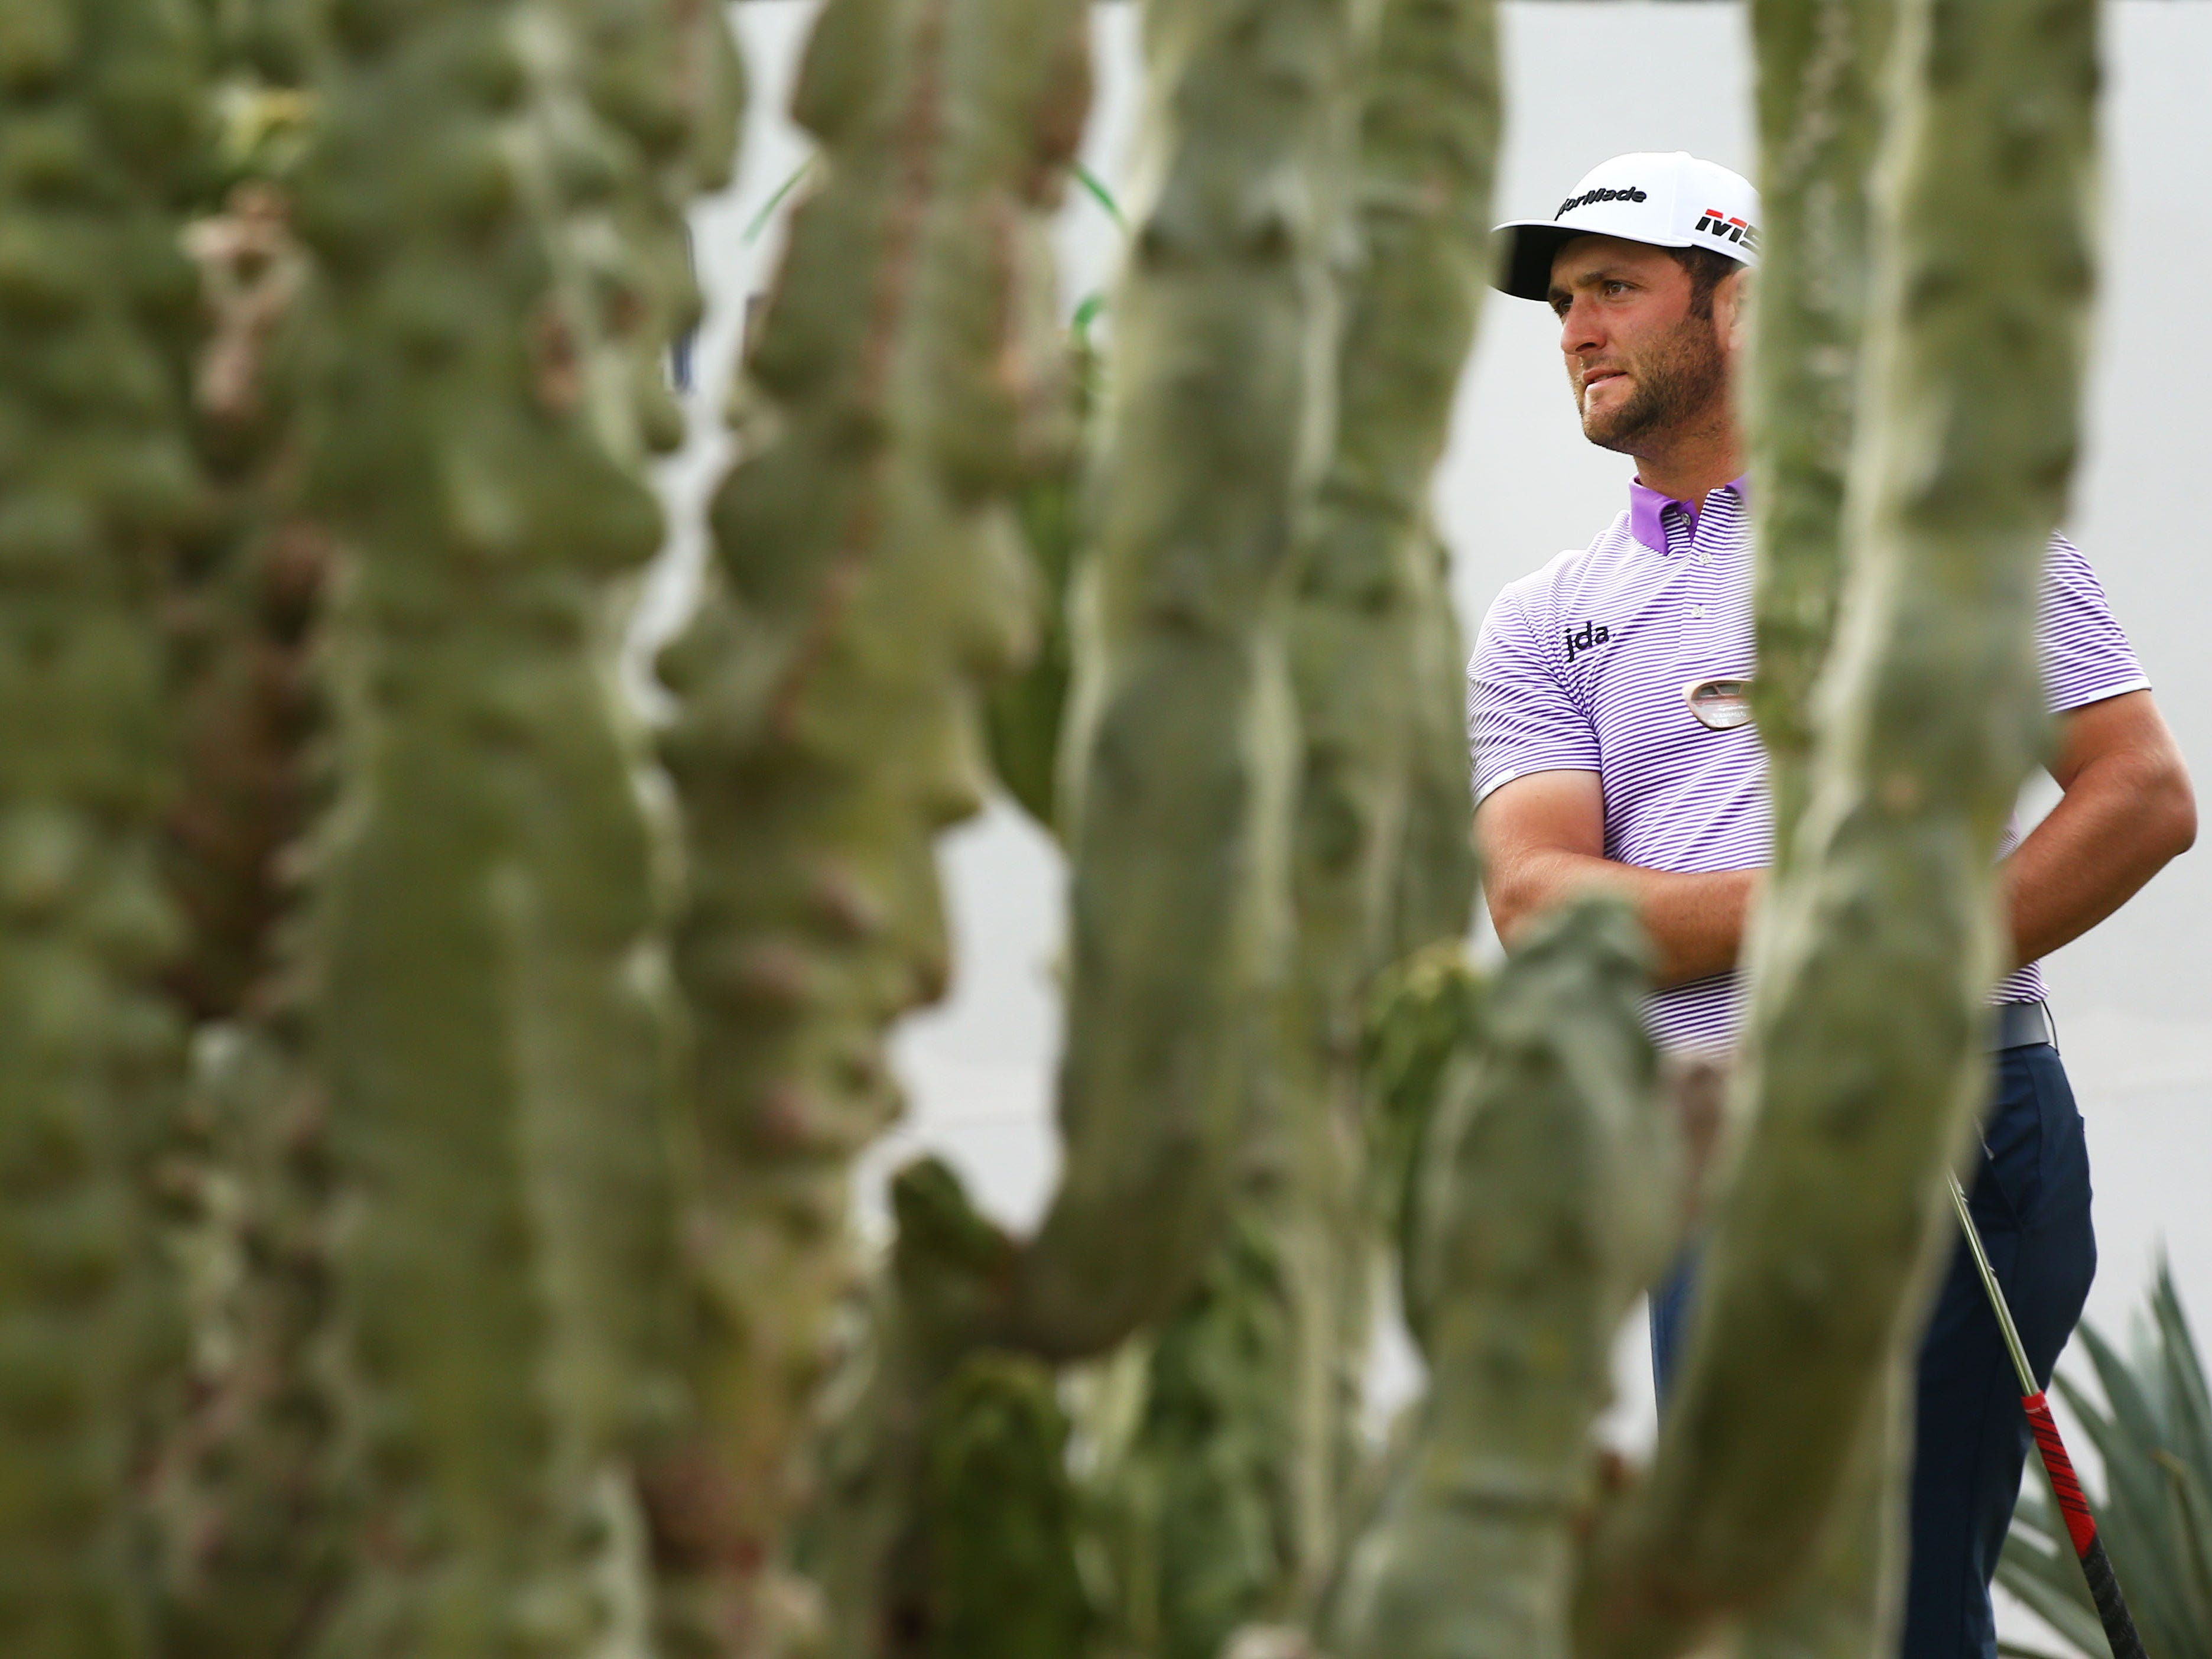 Jon Rahm watches his tee shot on the 16th hole during third round action on Feb. 2 during the Waste Management Phoenix Open at the TPC Scottsdale Stadium Course.